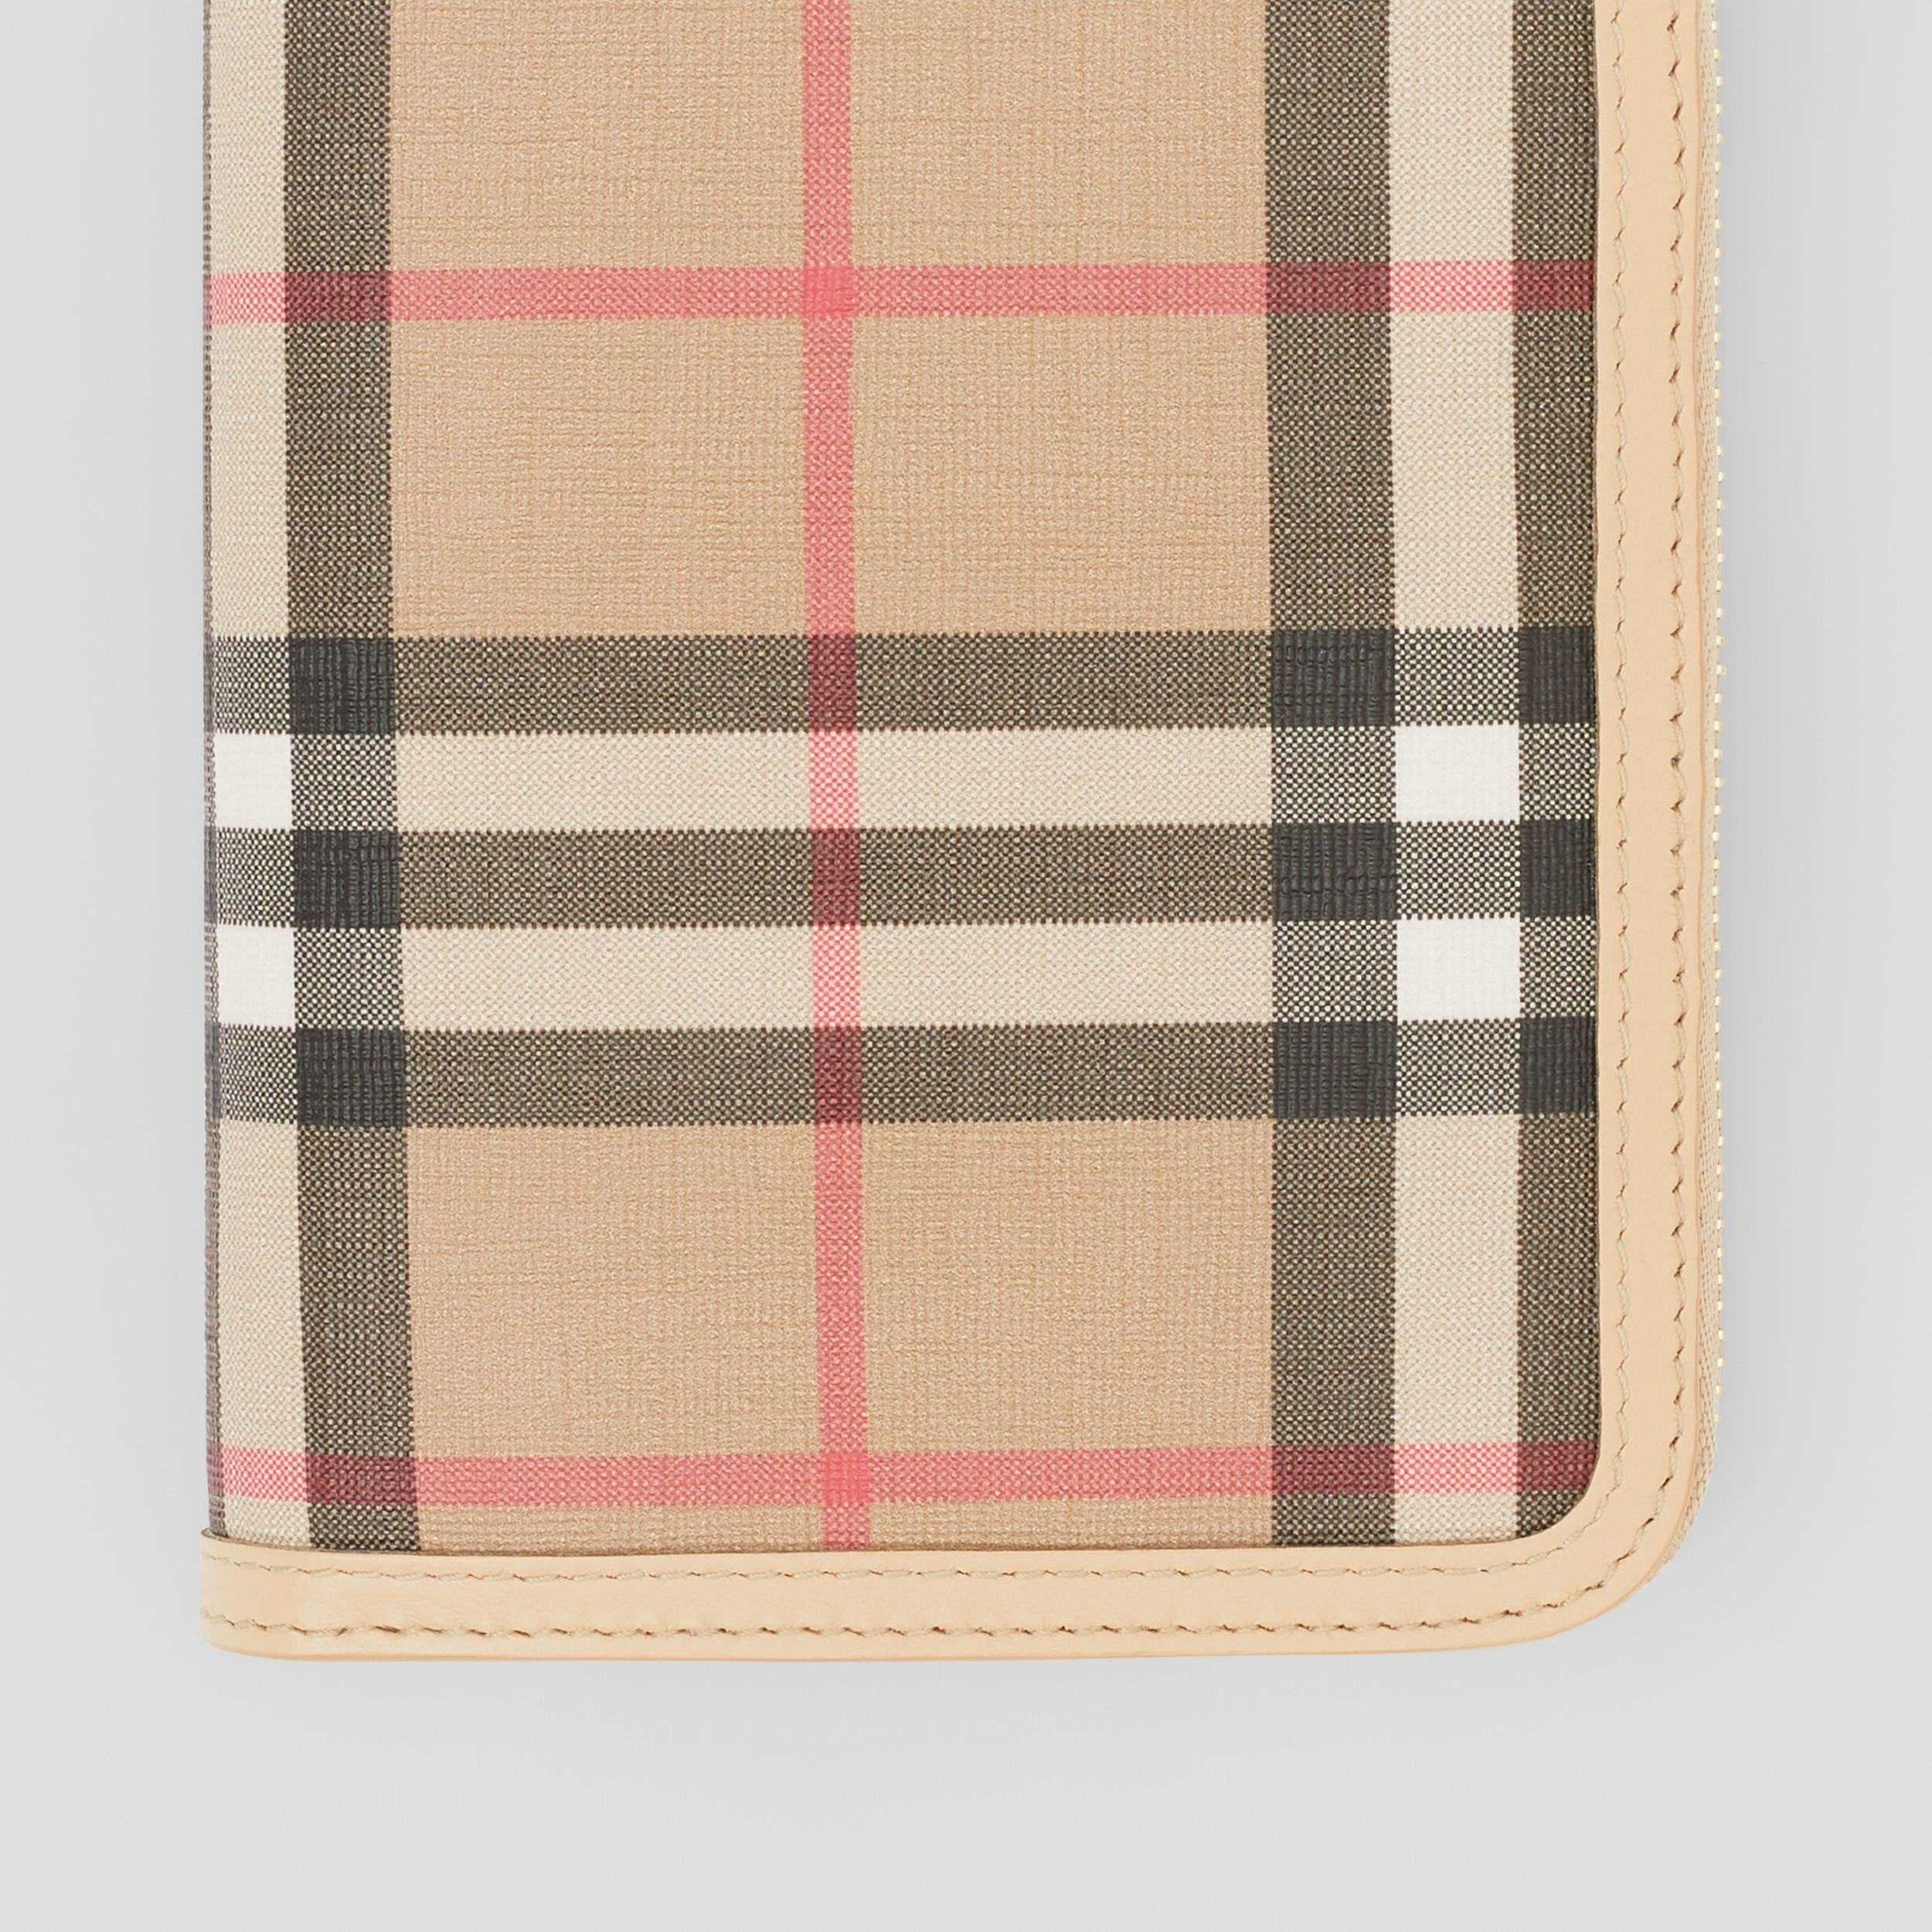 Vintage Check E-canvas and Leather Wallet in Beige - Women | Burberry - 2